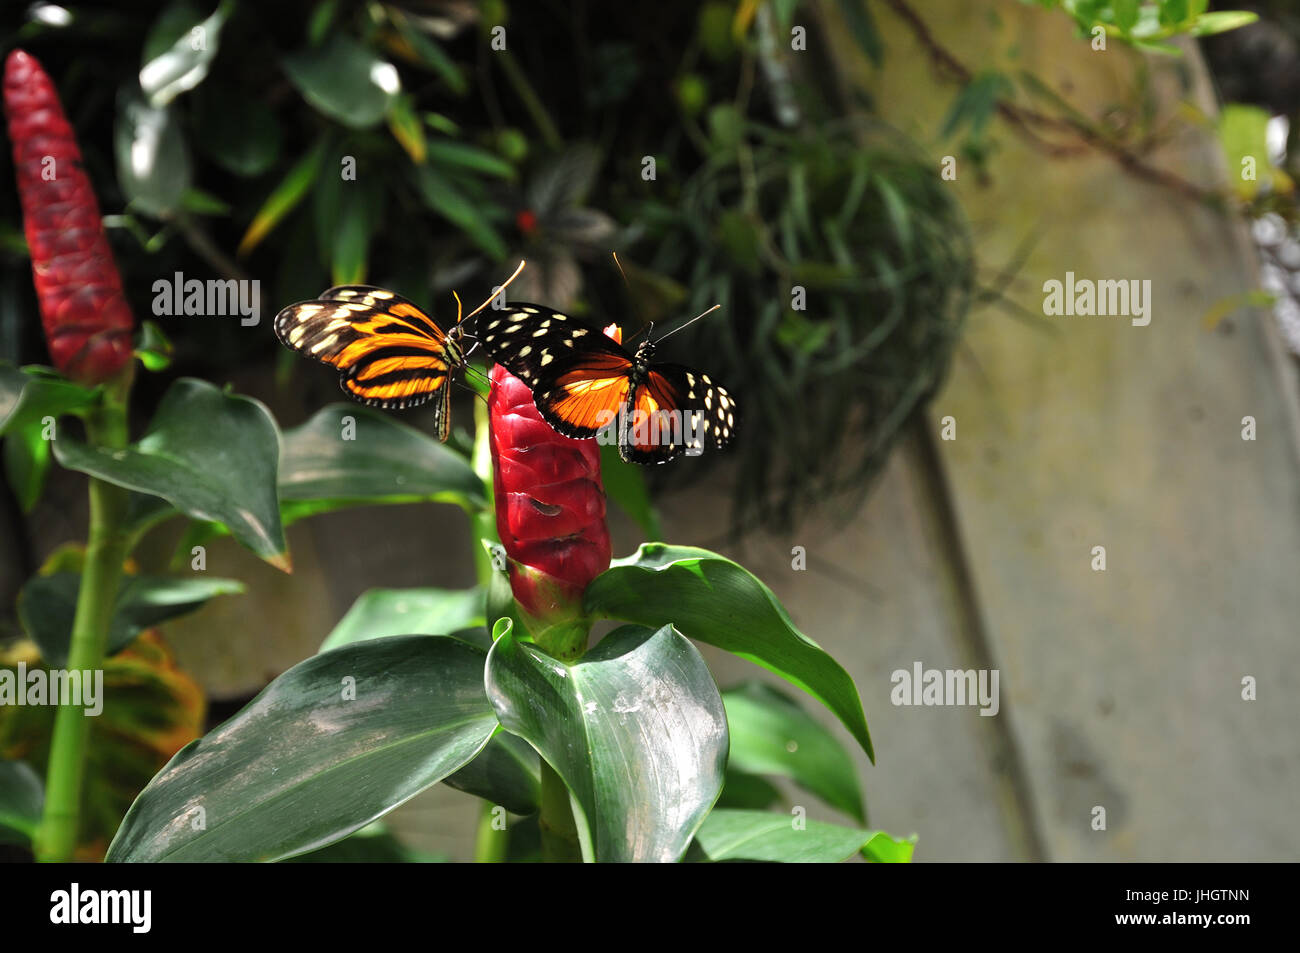 Butterfly on the Red Flower - Stock Image